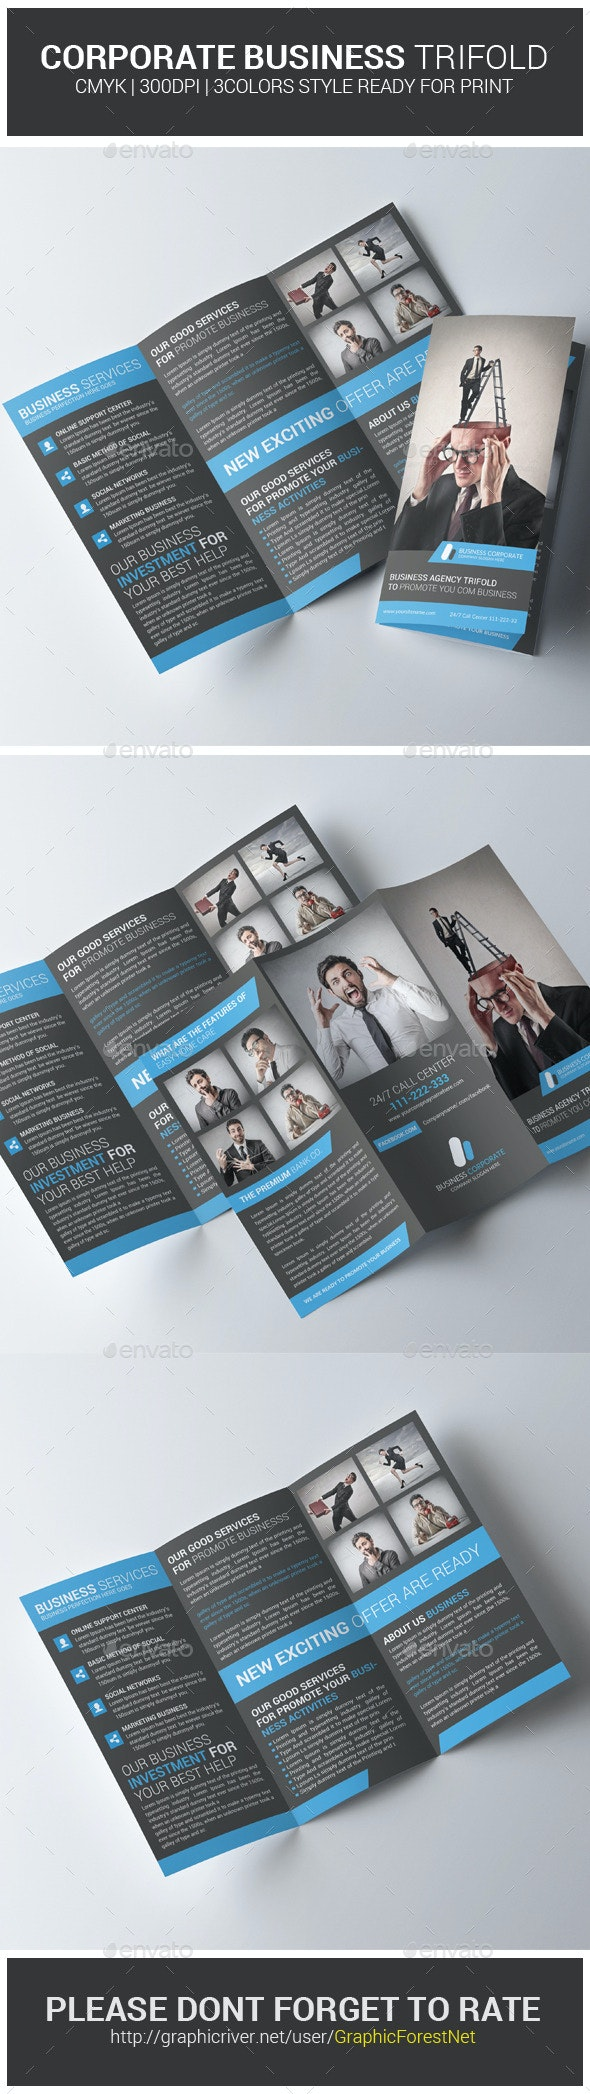 Corporate Business Trifold Brochure PSD Template - Corporate Brochures